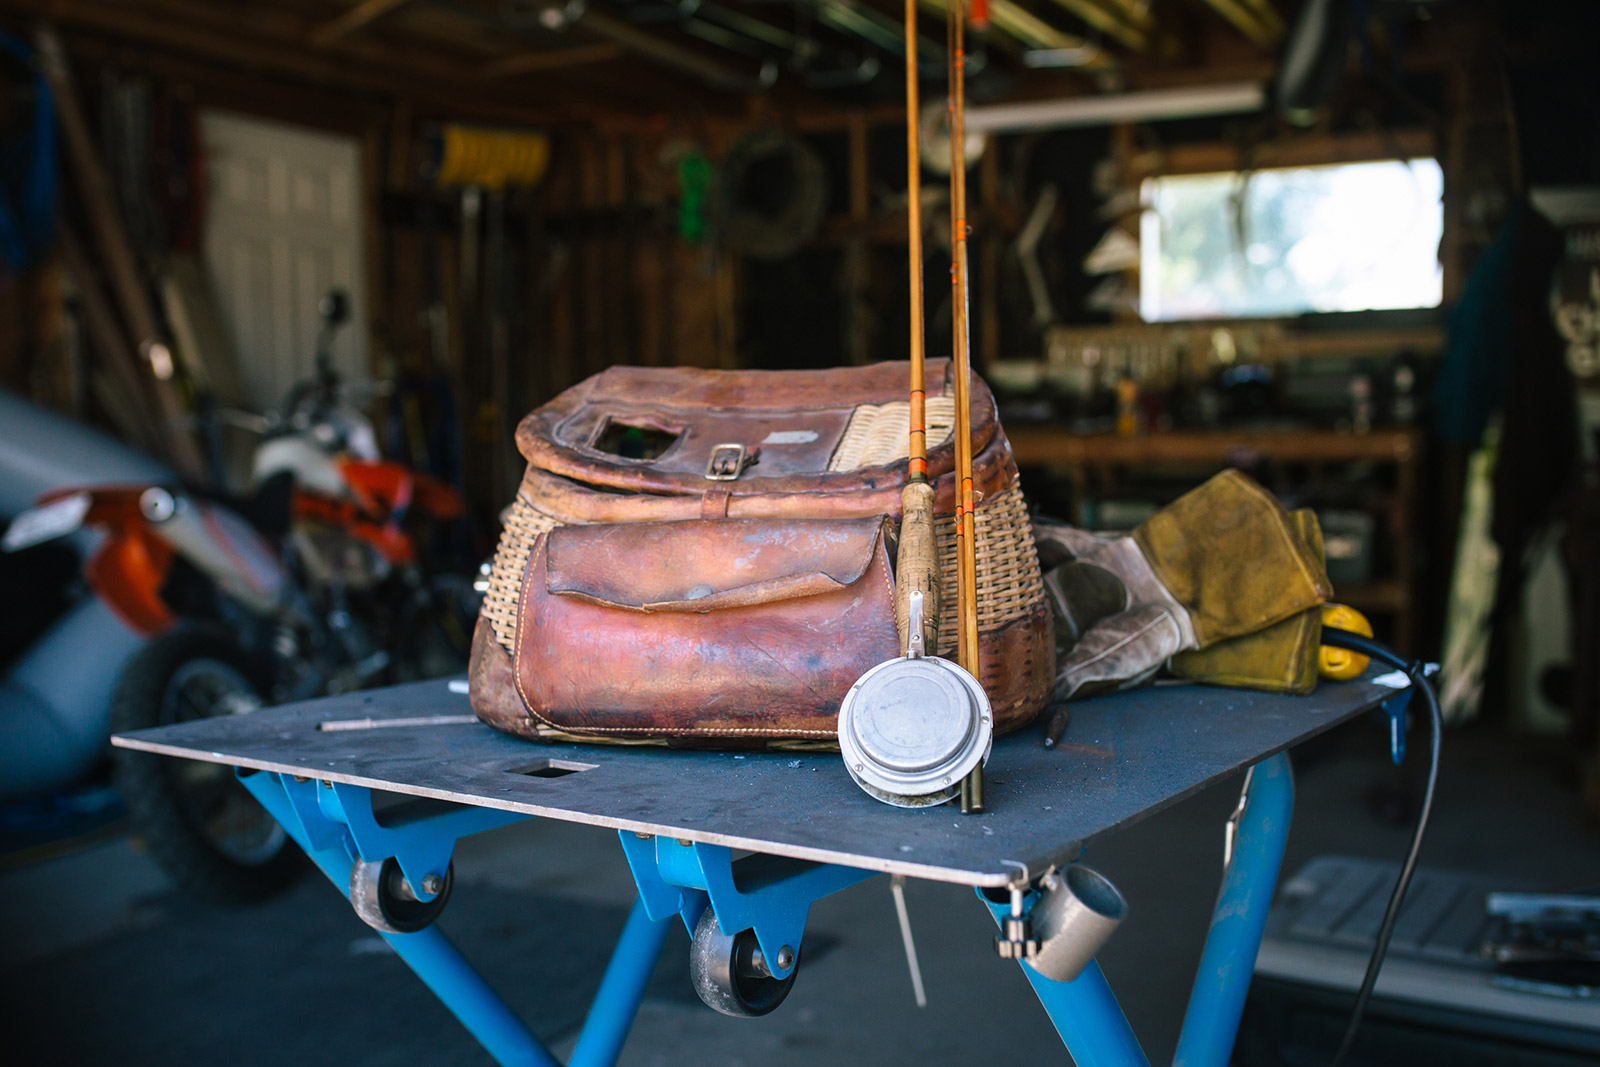 Mike Gurnett poses for this Montana photography session while he shows his grandfather's fishing bag and reel in Helena, Montana.